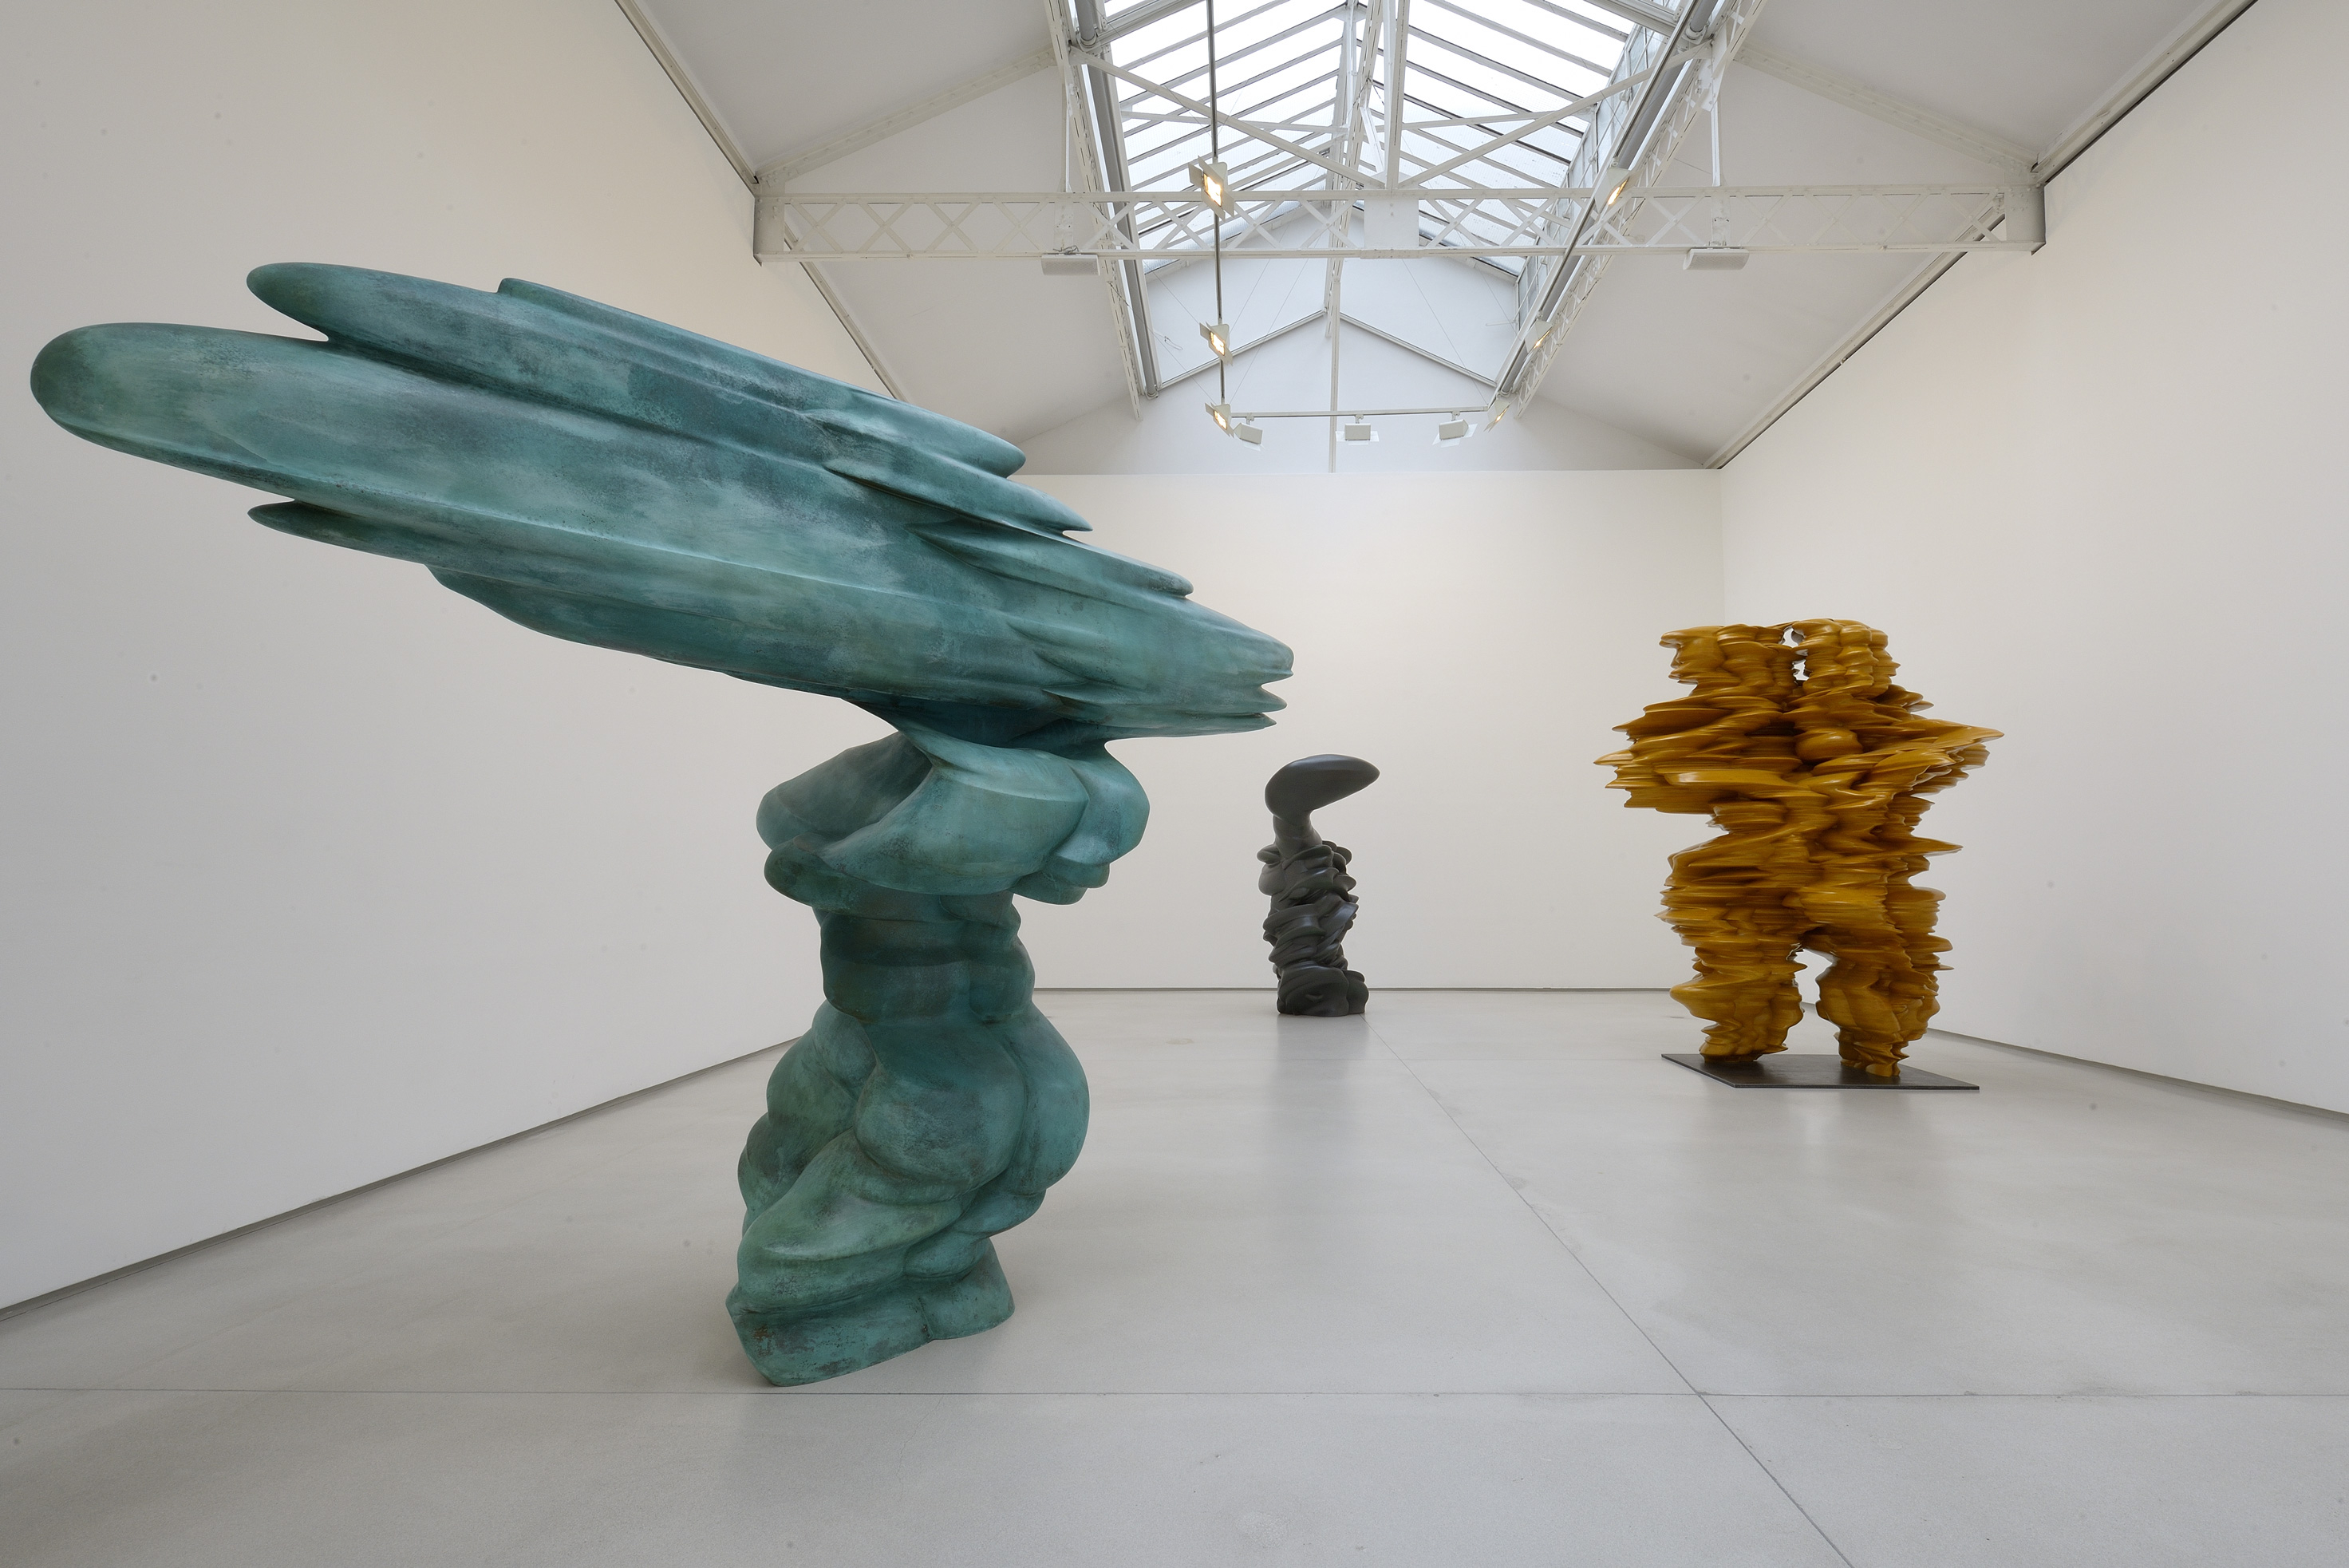 Tony Cragg, Accurate Figure, 2013, image © Galerie Thaddaeus Ropac